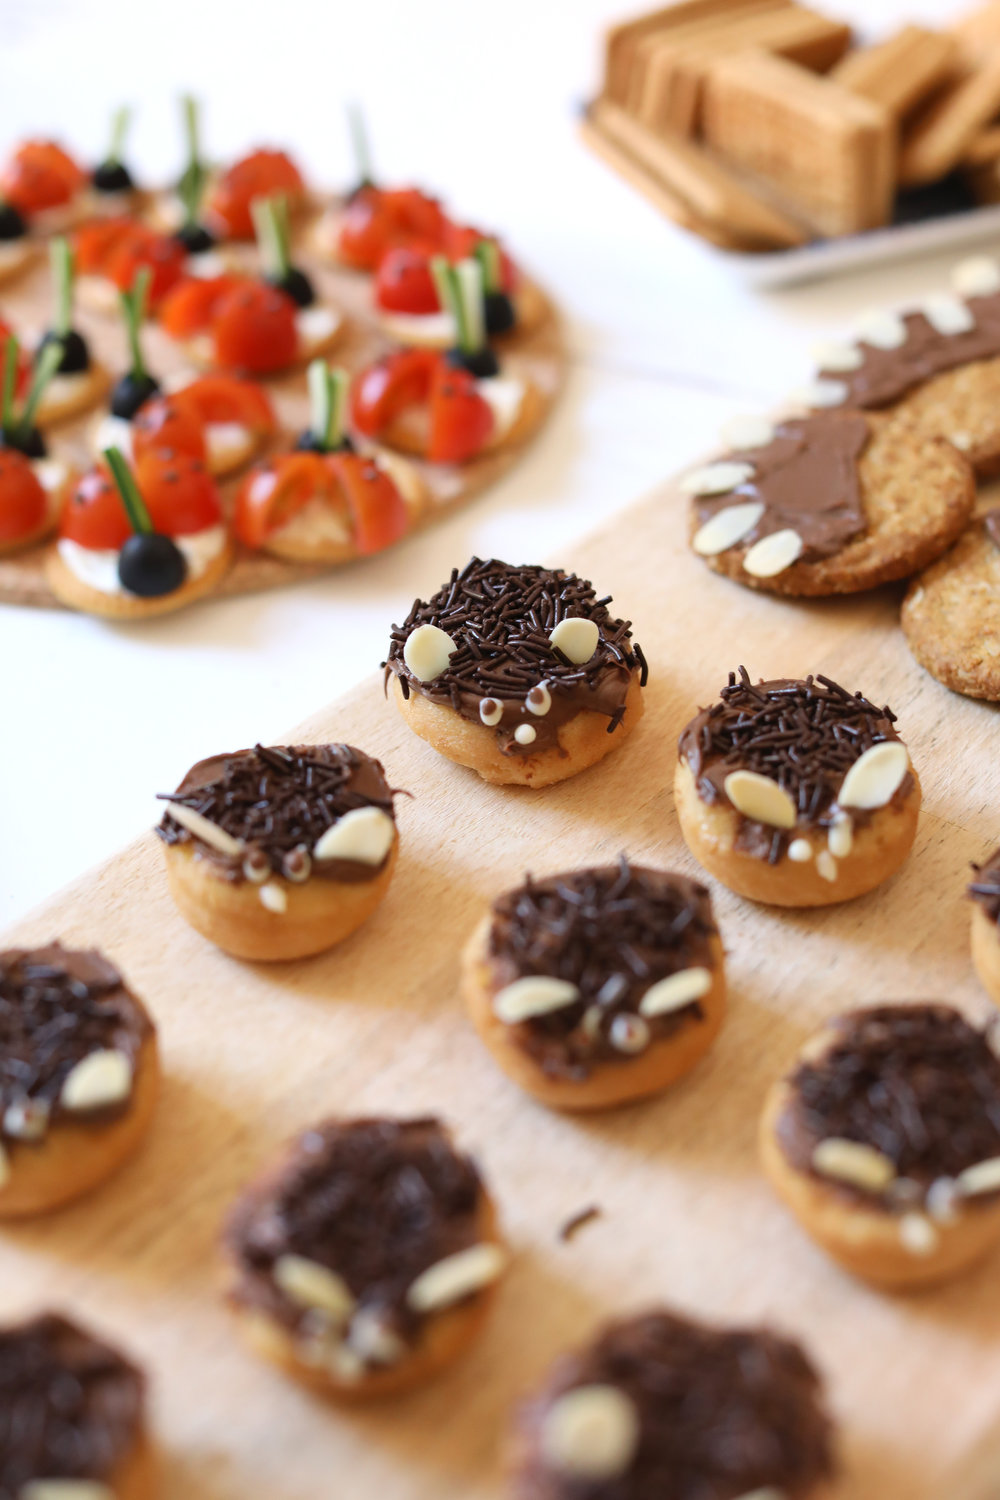 Hedgehogs made with mini doughnuts, chocolate spread, sprinkles and almonds.